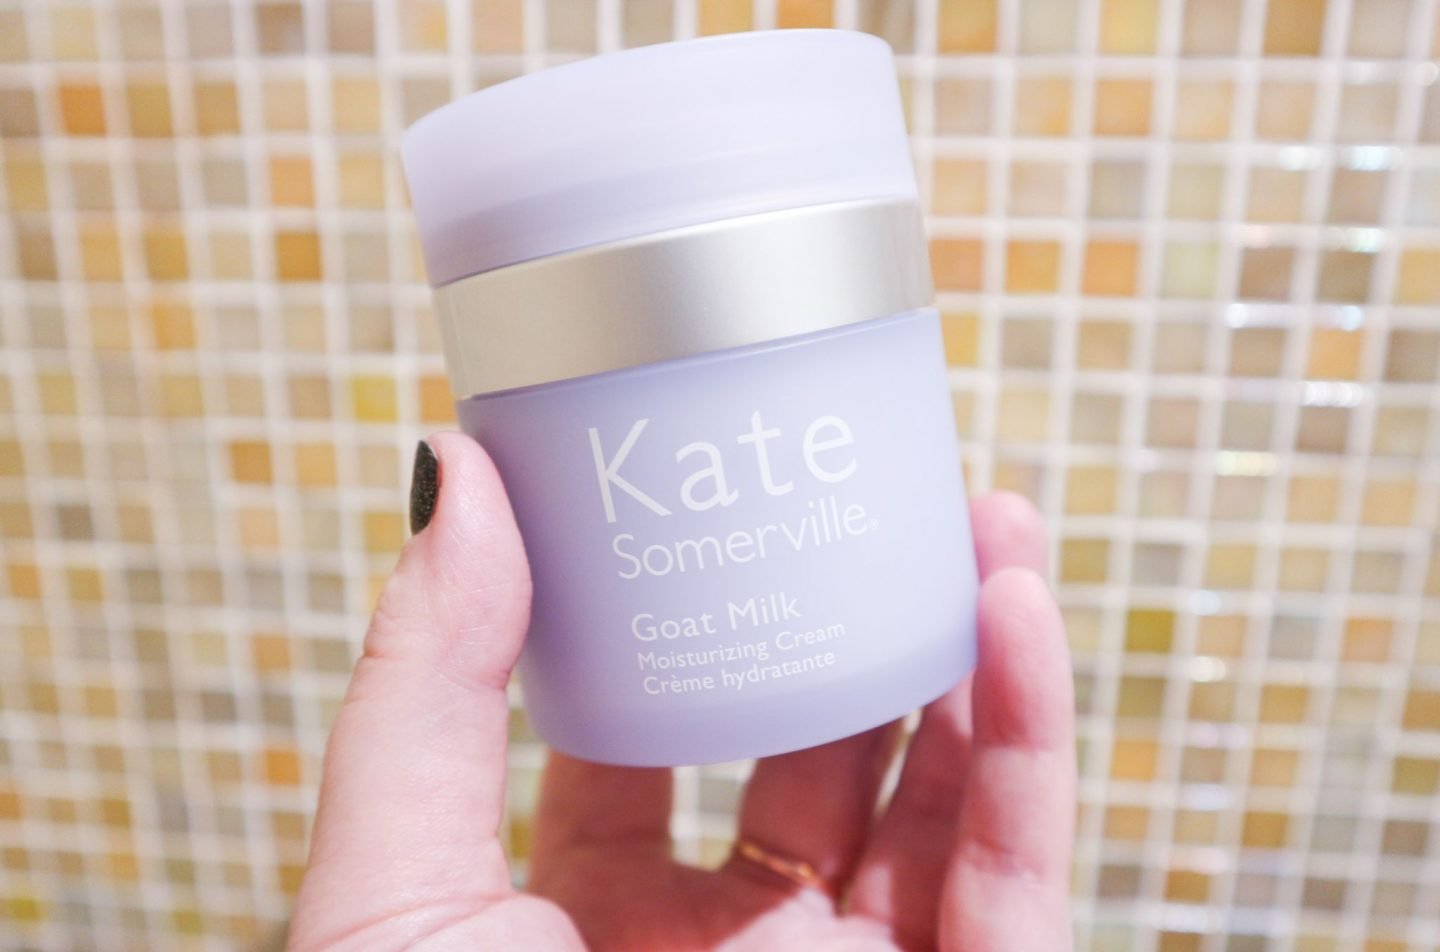 Kate Somerville Goat Milk Moisturising Cream